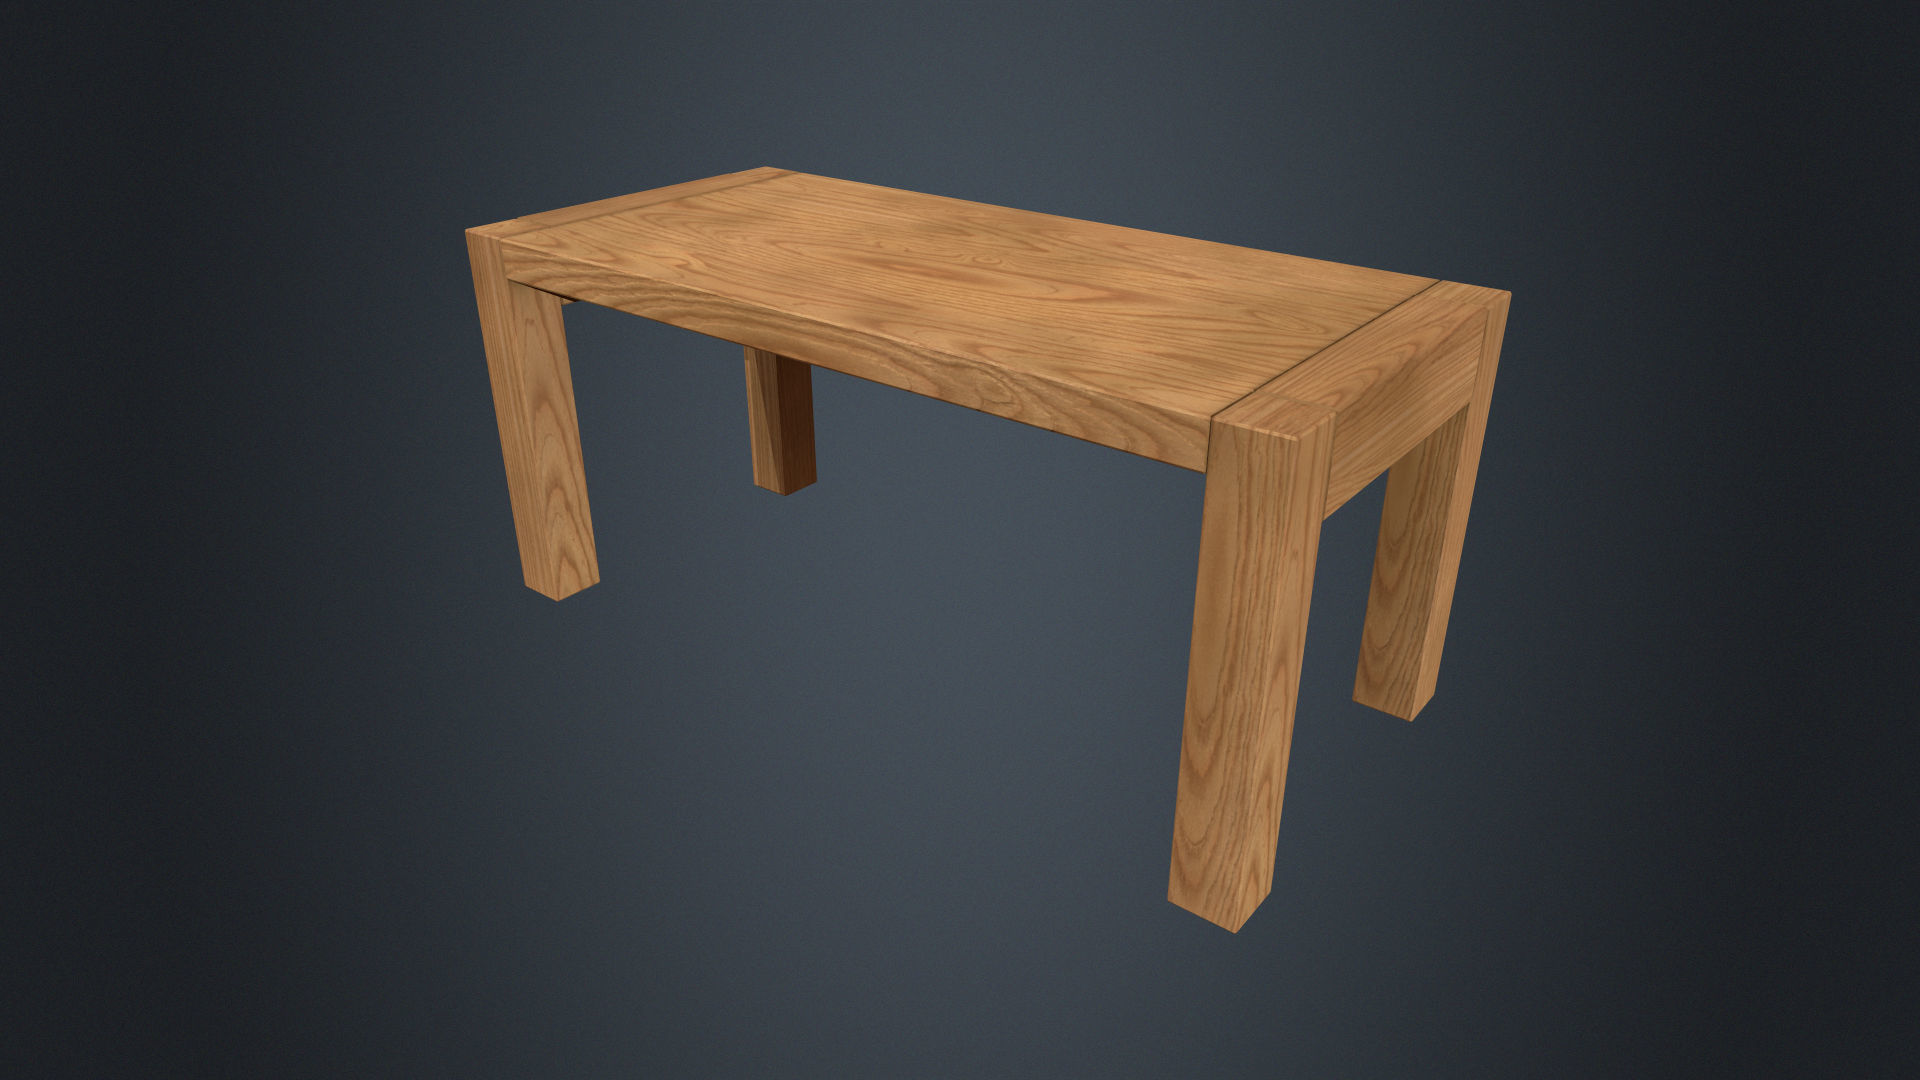 Wooden Table - Beech Table - Beech Furniture - Wood Furniture